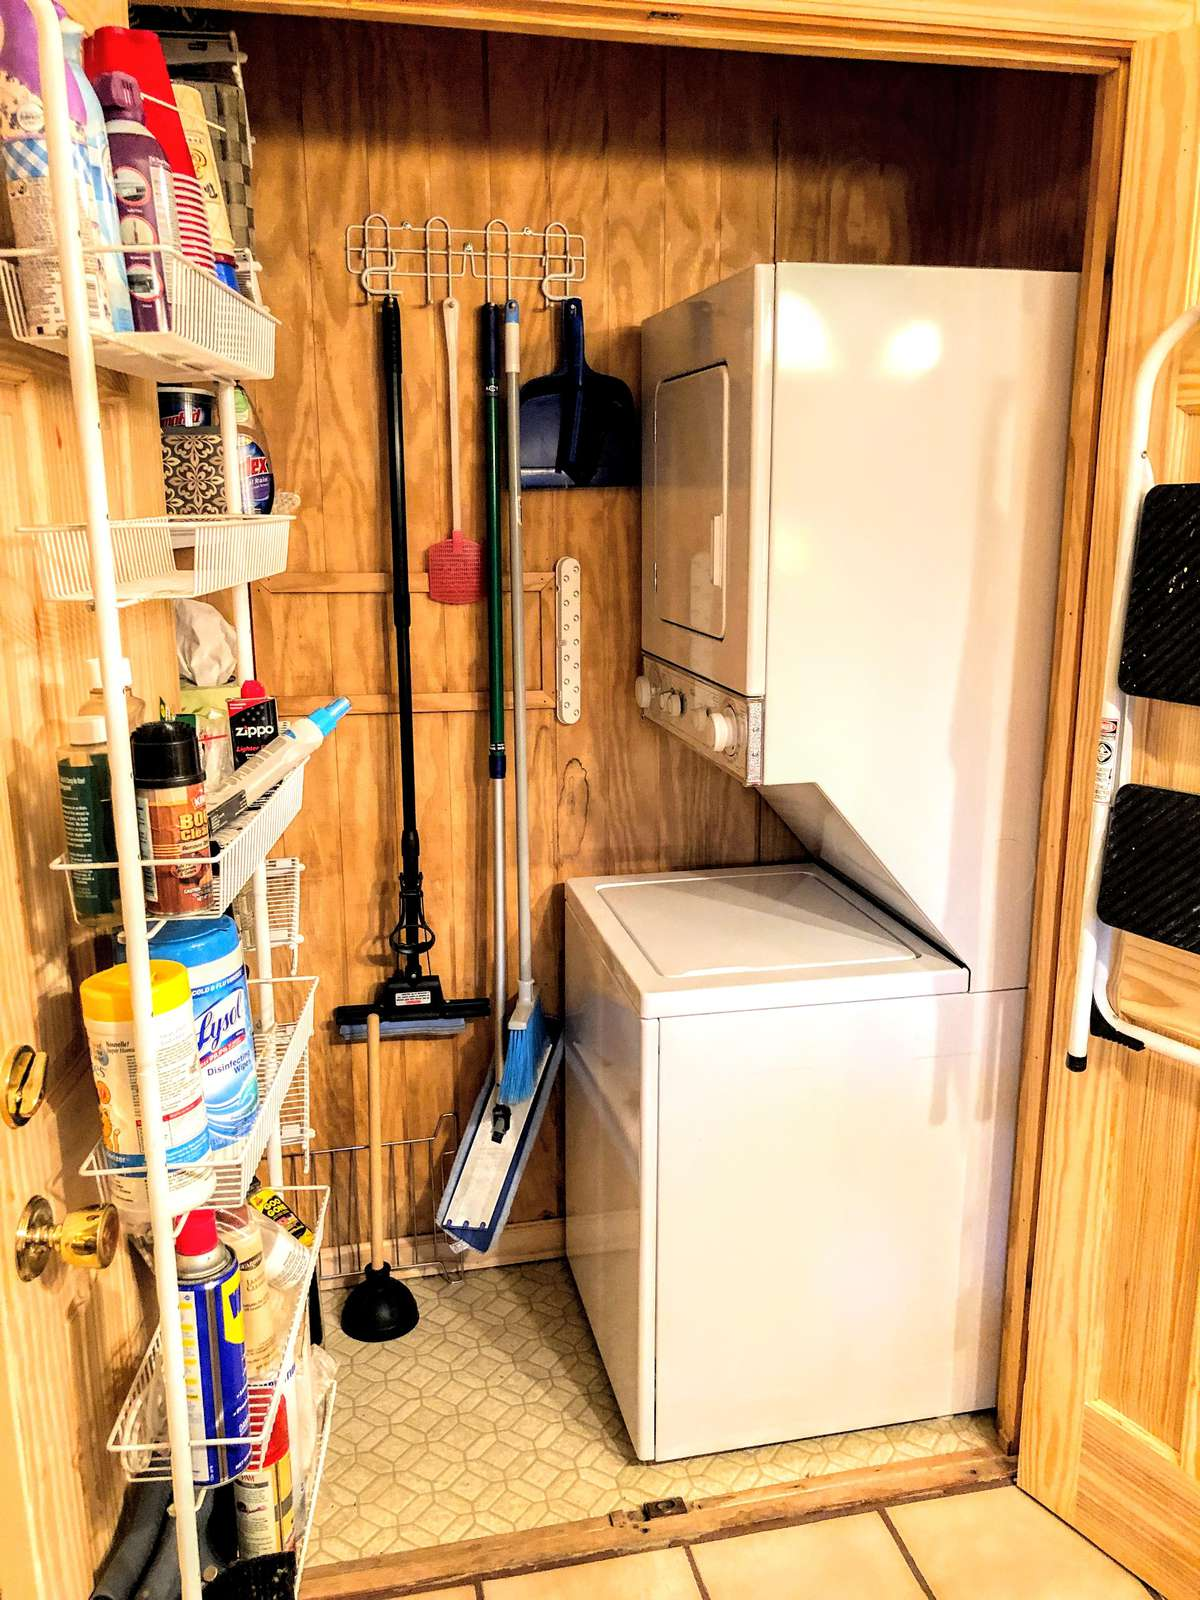 Washer/Dryer combo in kitchen closet; be sure to bring detergent.